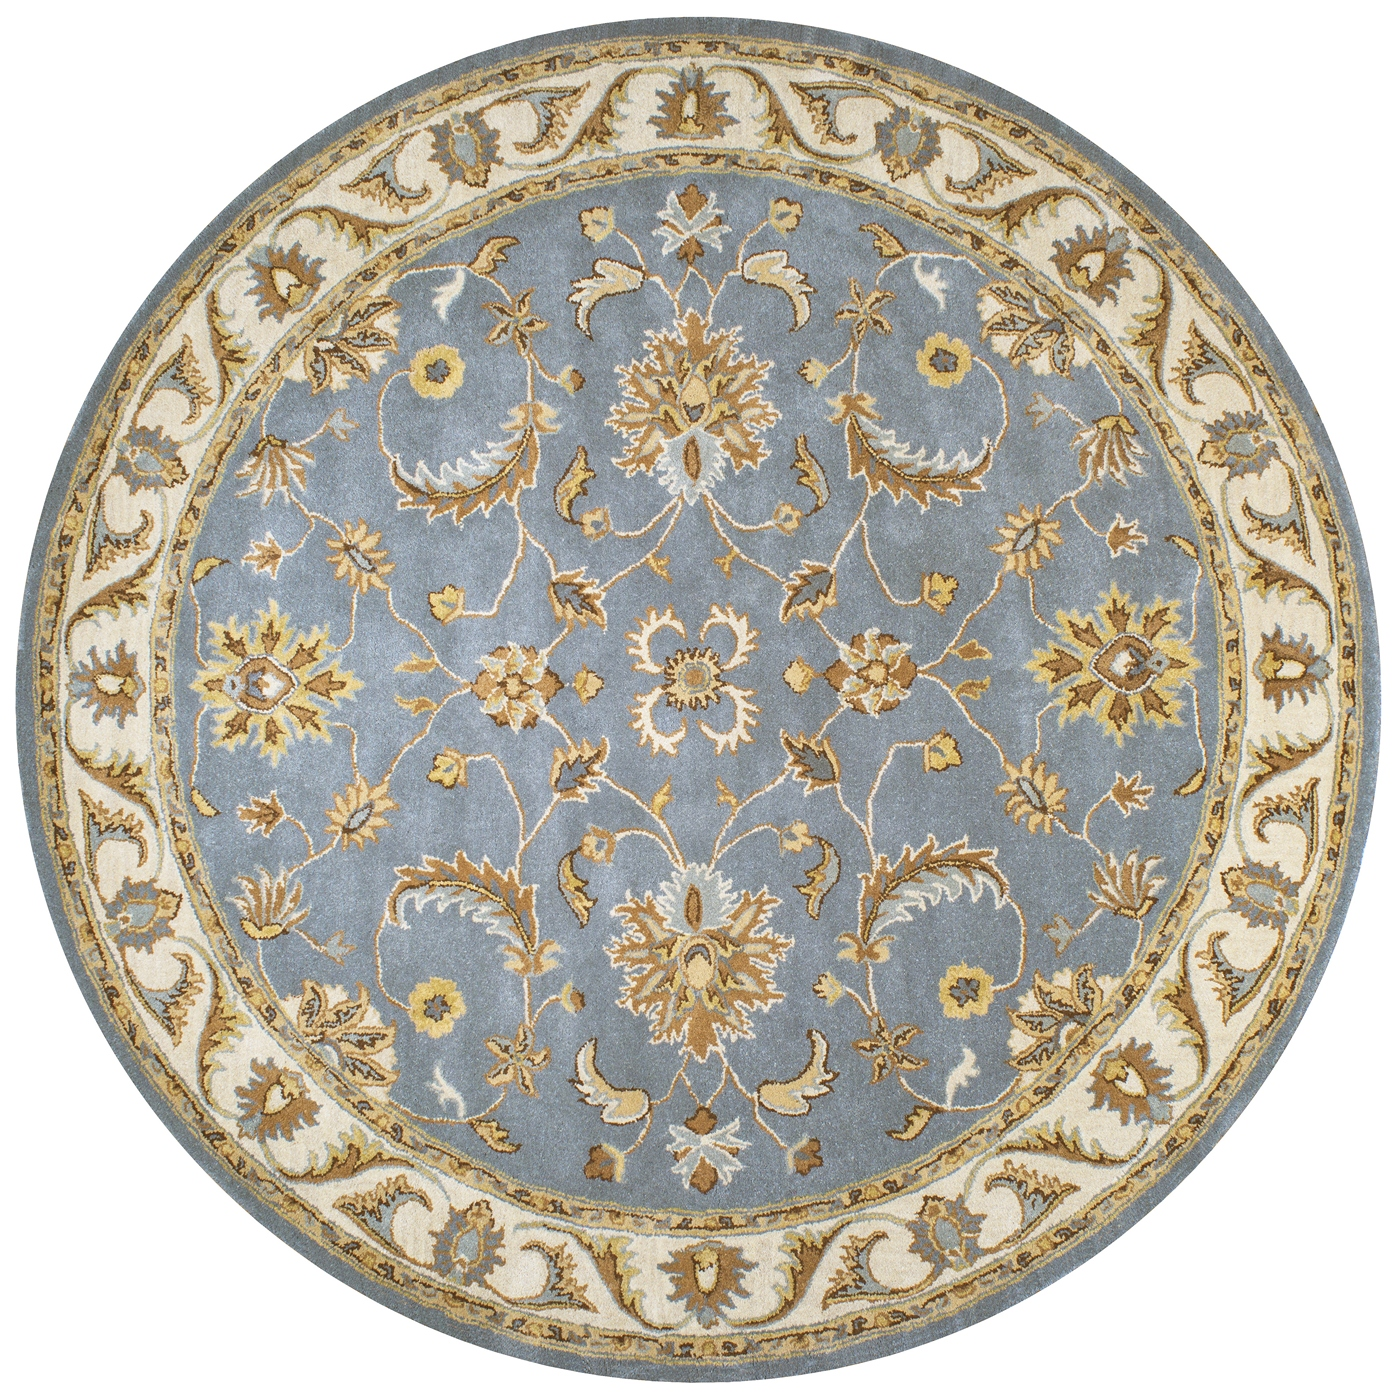 Volare Floral Trellis Pattern Wool Round Rug In Blue Tan